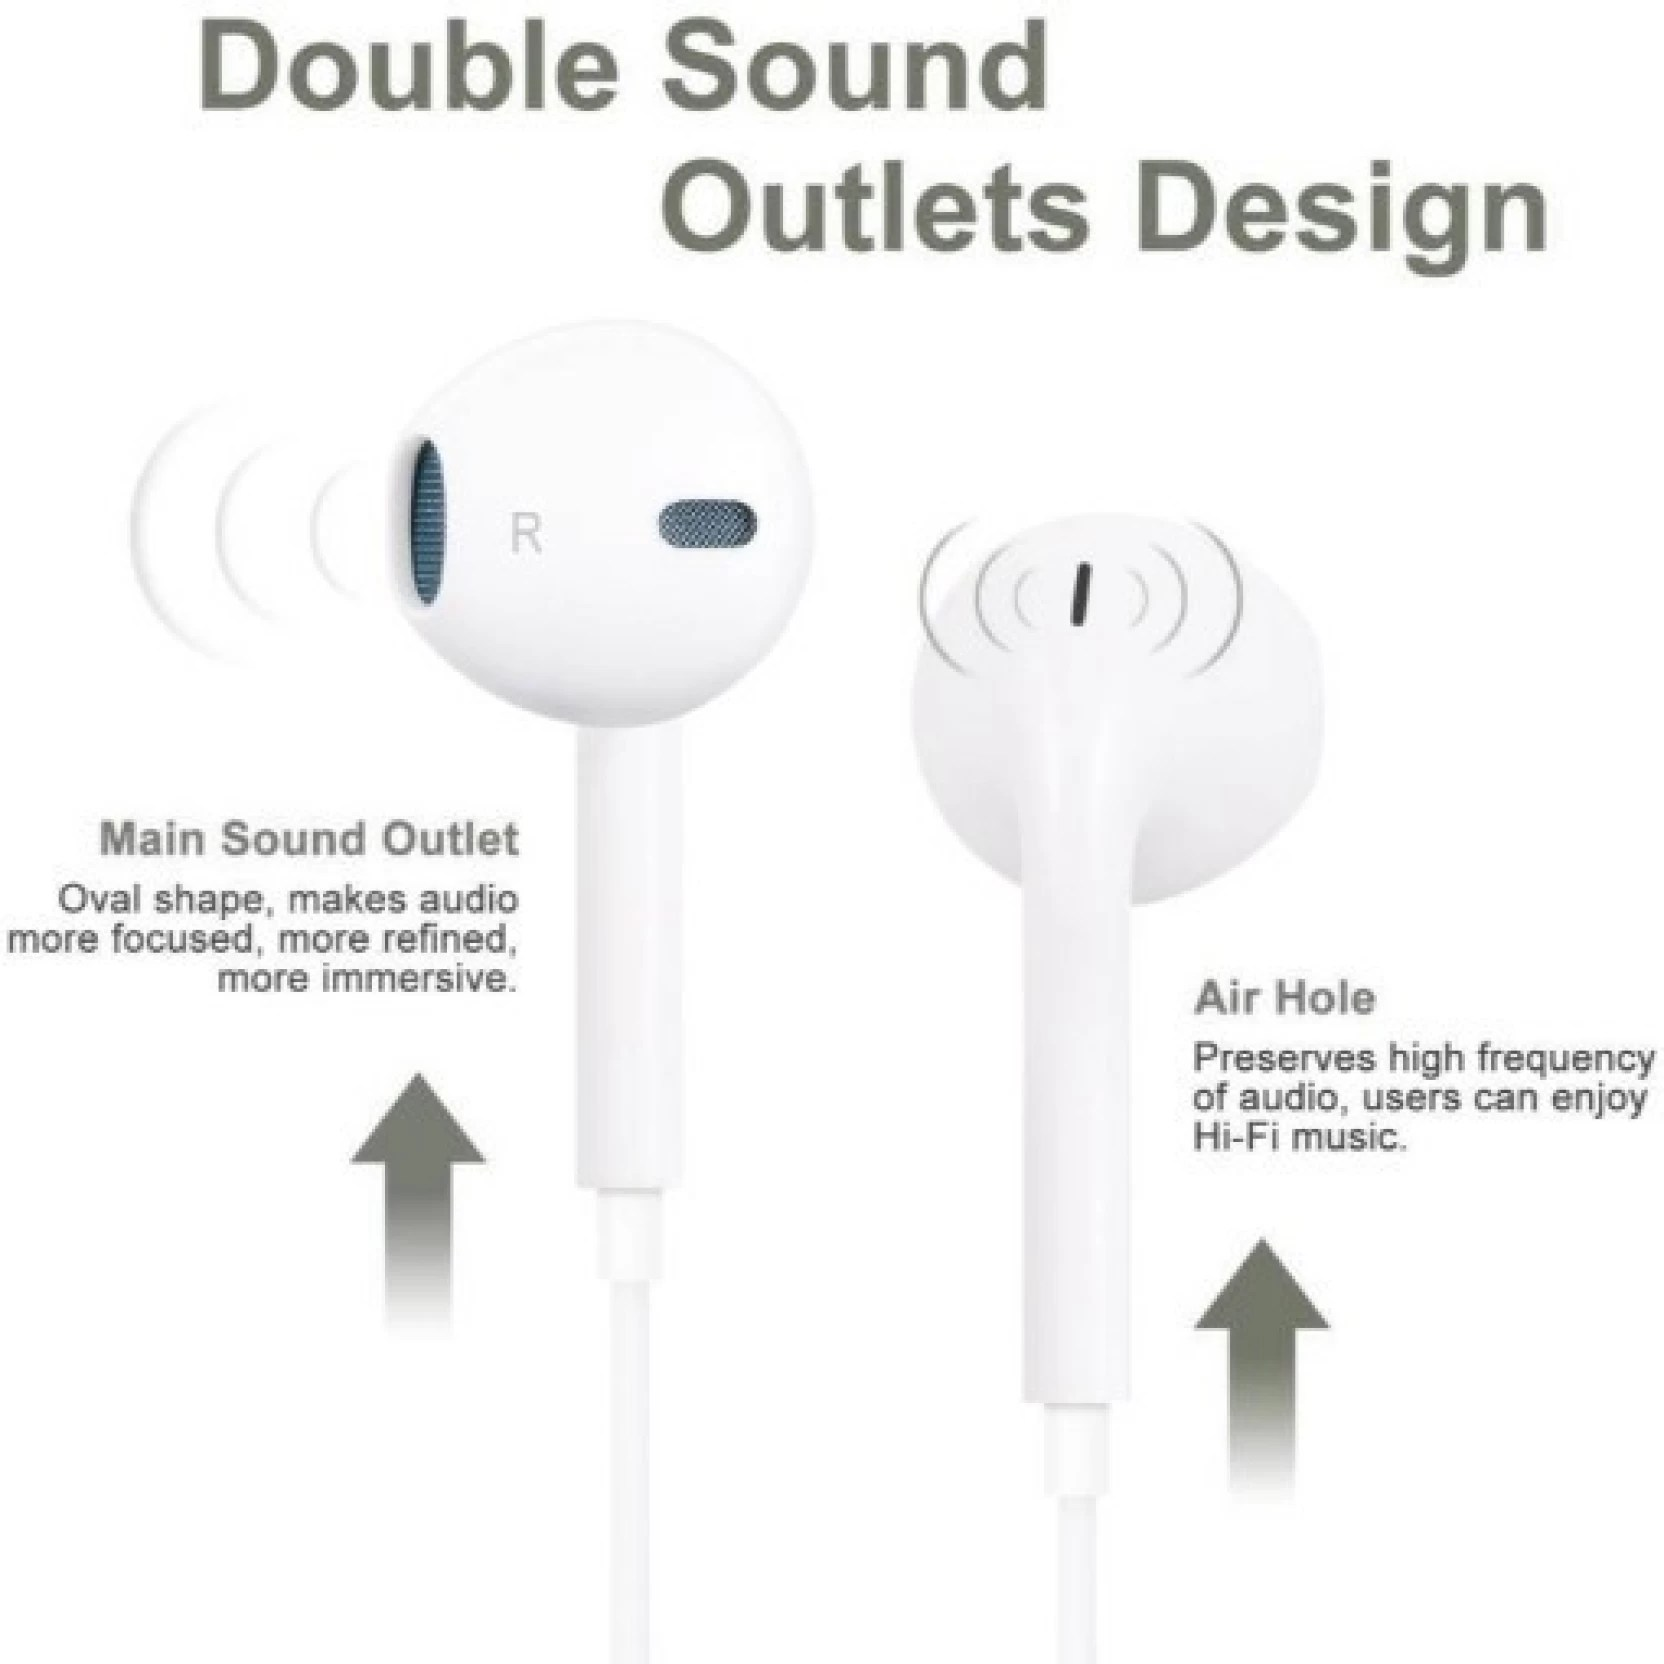 hight resolution of clairbell omx 573o apple oppo wired headphone wired headphone wired headphone wired stereo headphone wired headphone gym headphone sports